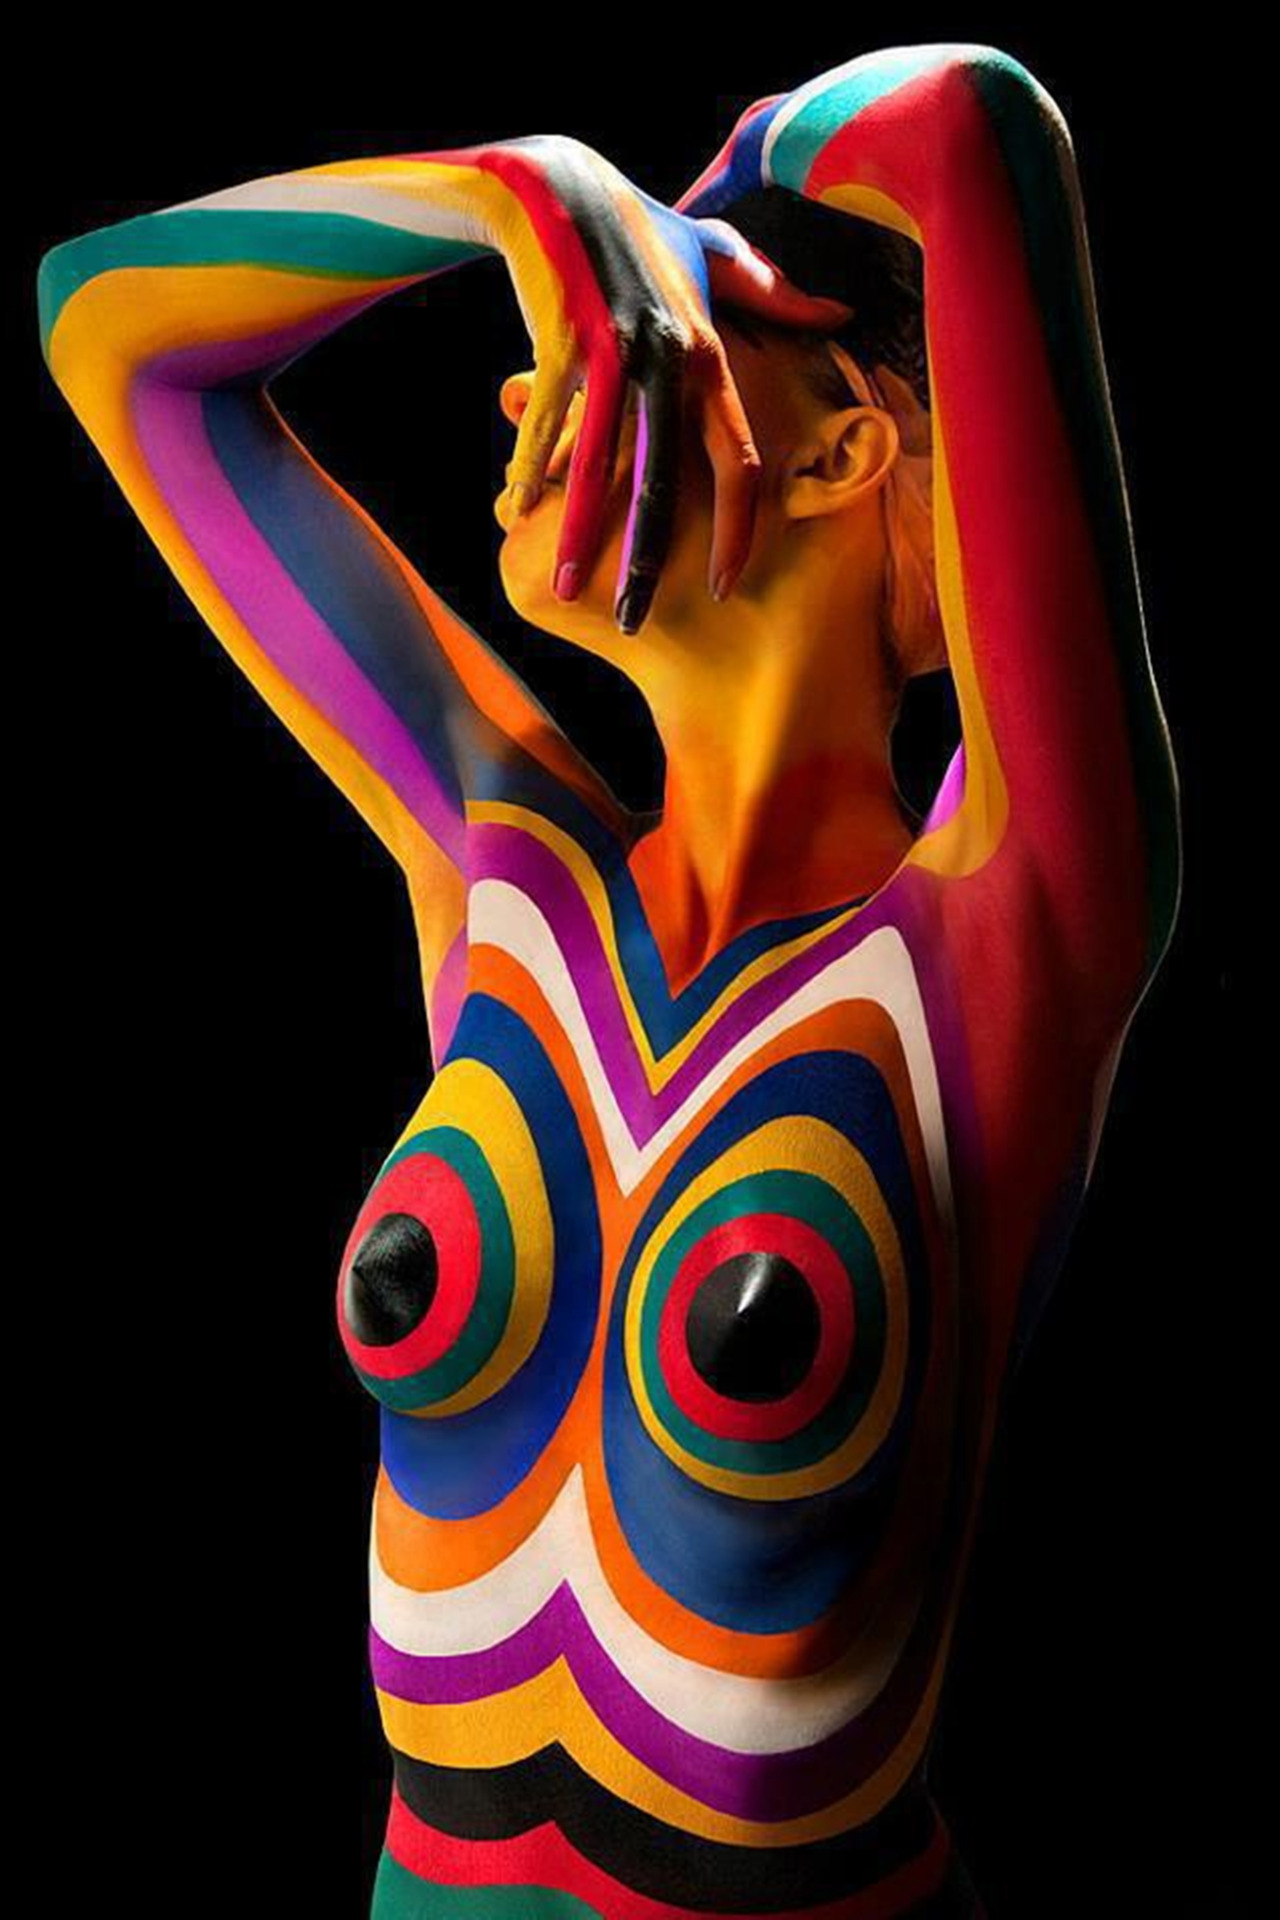 amateur fat ladies chubbies and thick women Bodyart, Bodypaint, Bodypaint, Bodypainting, Bodypainting, Celinef, Frontal